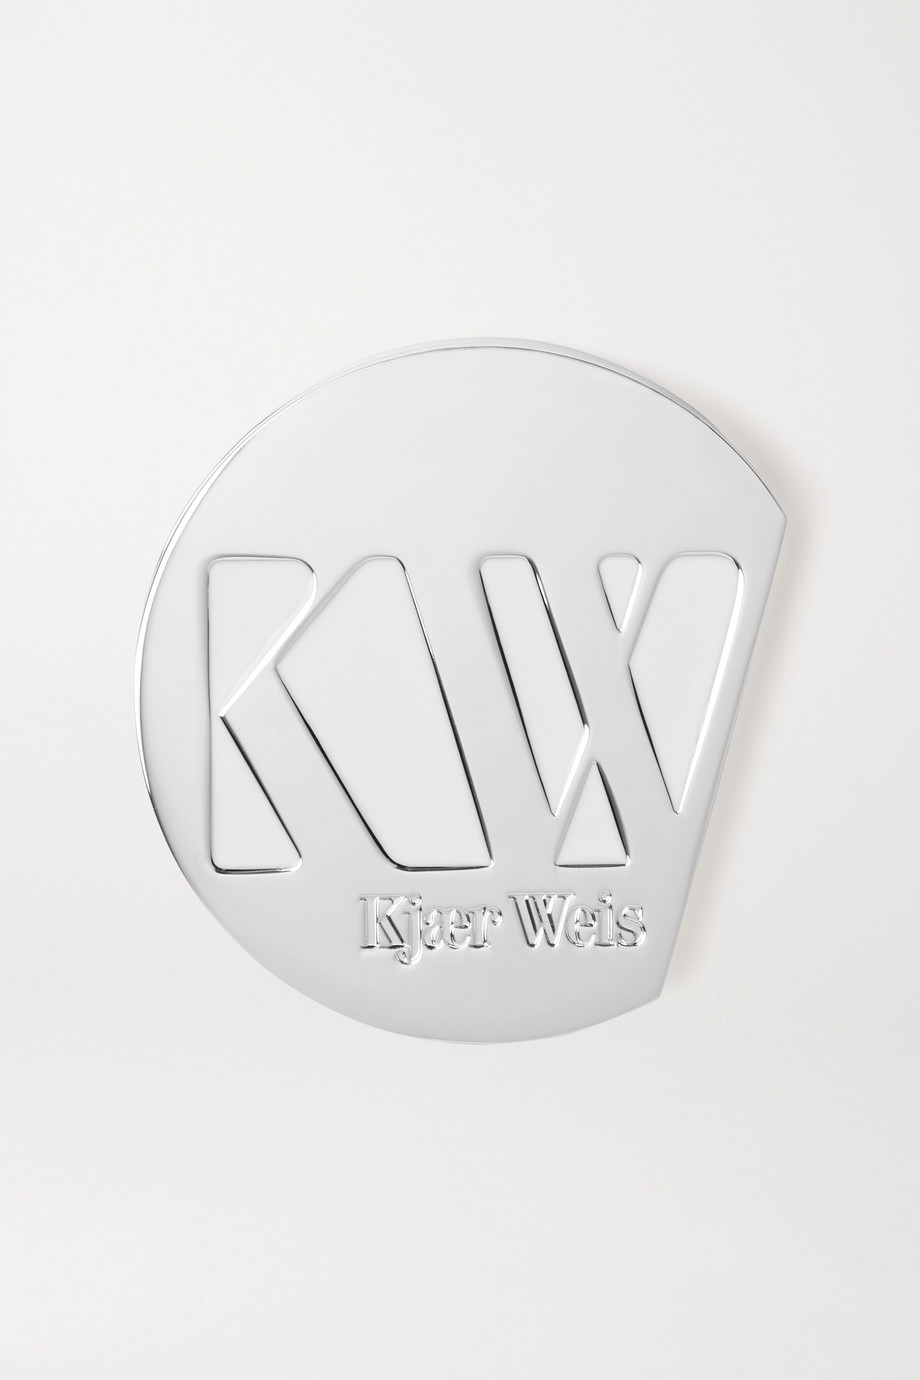 KJAER WEIS Iconic Edition Refillable Compact - The Quadrant